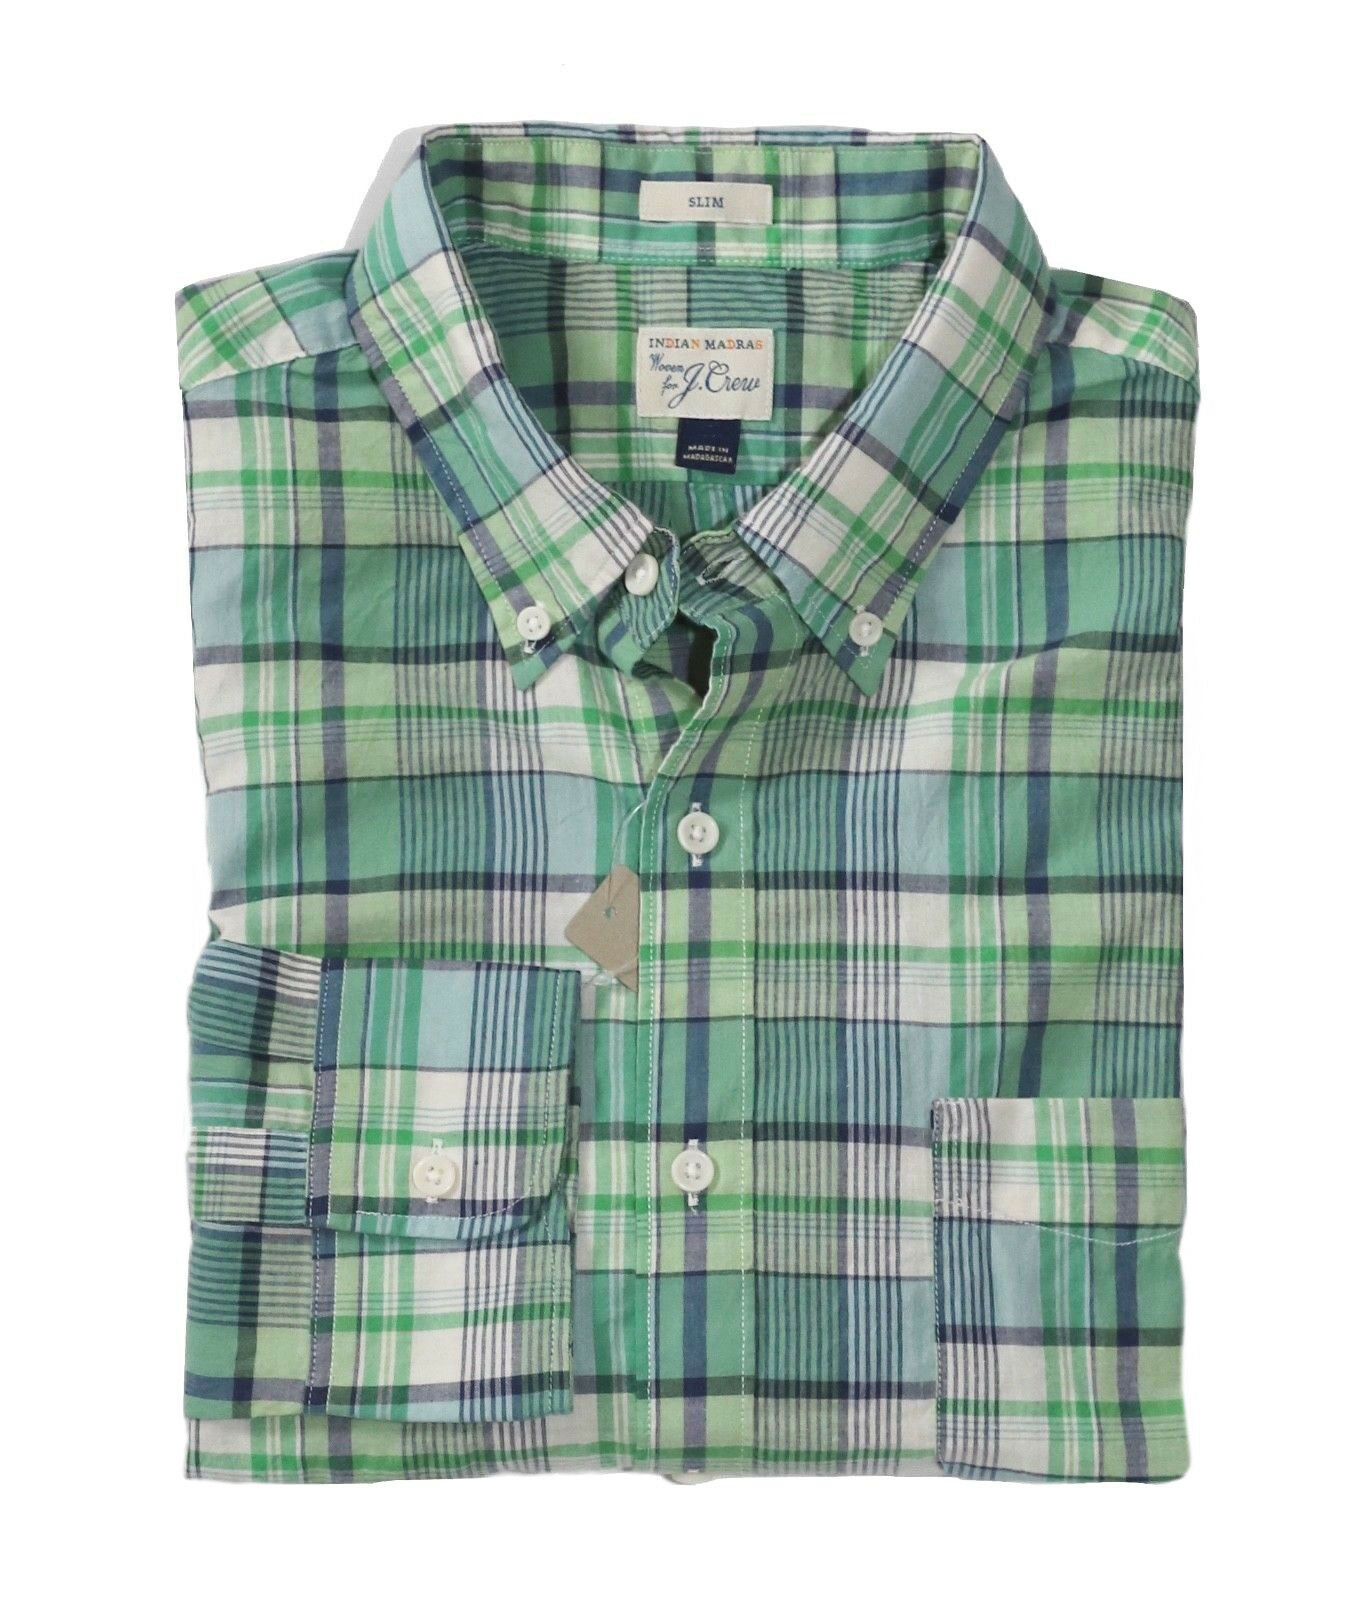 J.Crew - Mens XS Slim Fit - NWT - Long Sleeve Green Plaid Madras Cotton Shirt